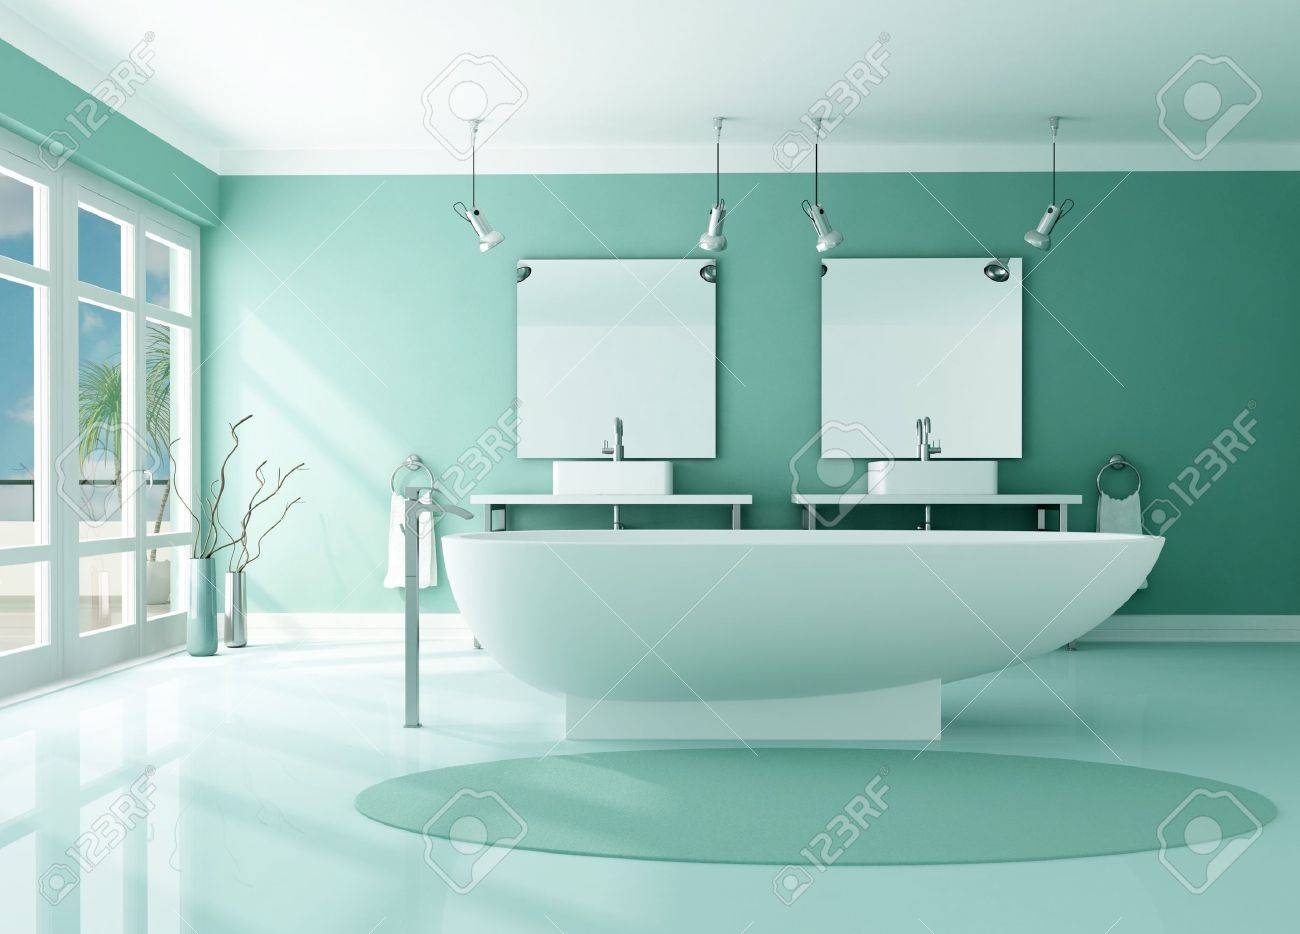 luxury modern bathroom with fashion bathtub and double sink -rendering Stock Photo - 8476096